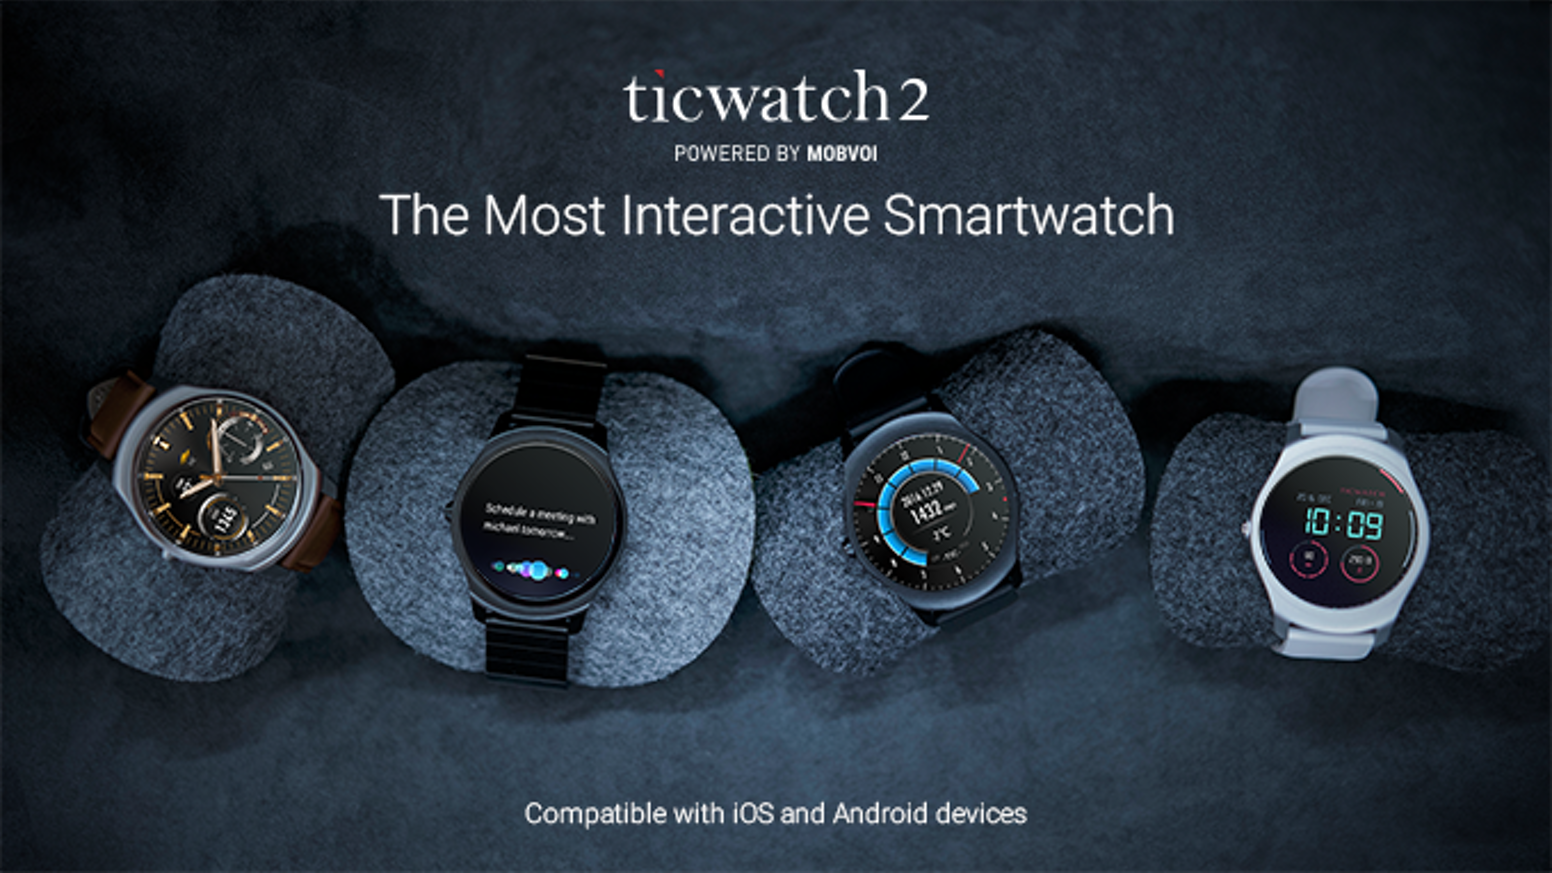 Uber Price Quote >> Ticwatch 2: The Most Interactive Smartwatch by Mobvoi ...